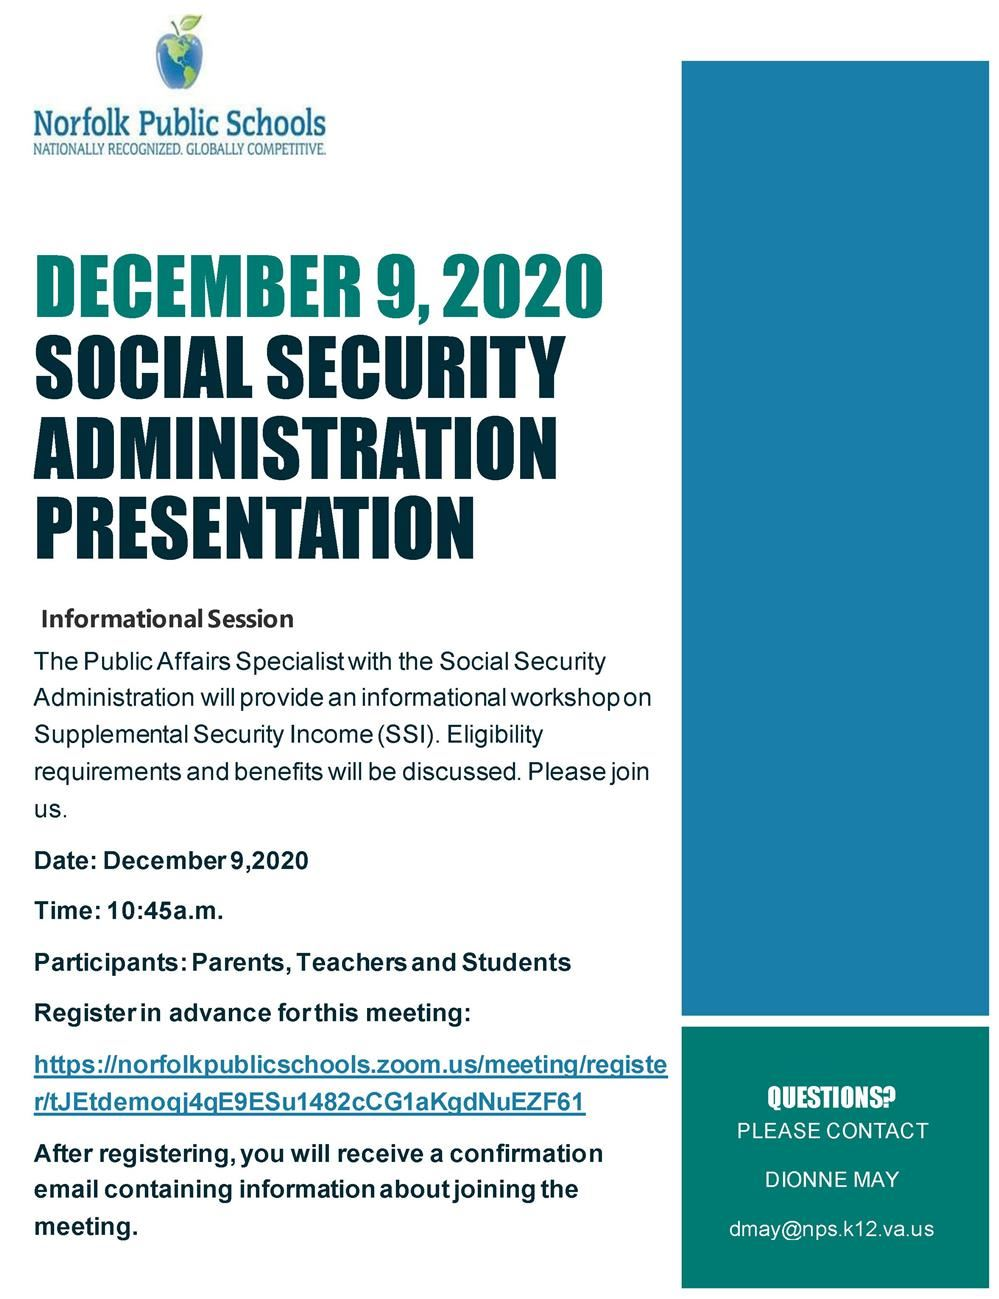 Please Join Us for an Informational Session and Discussion on Supplemental Security Income (SSI)